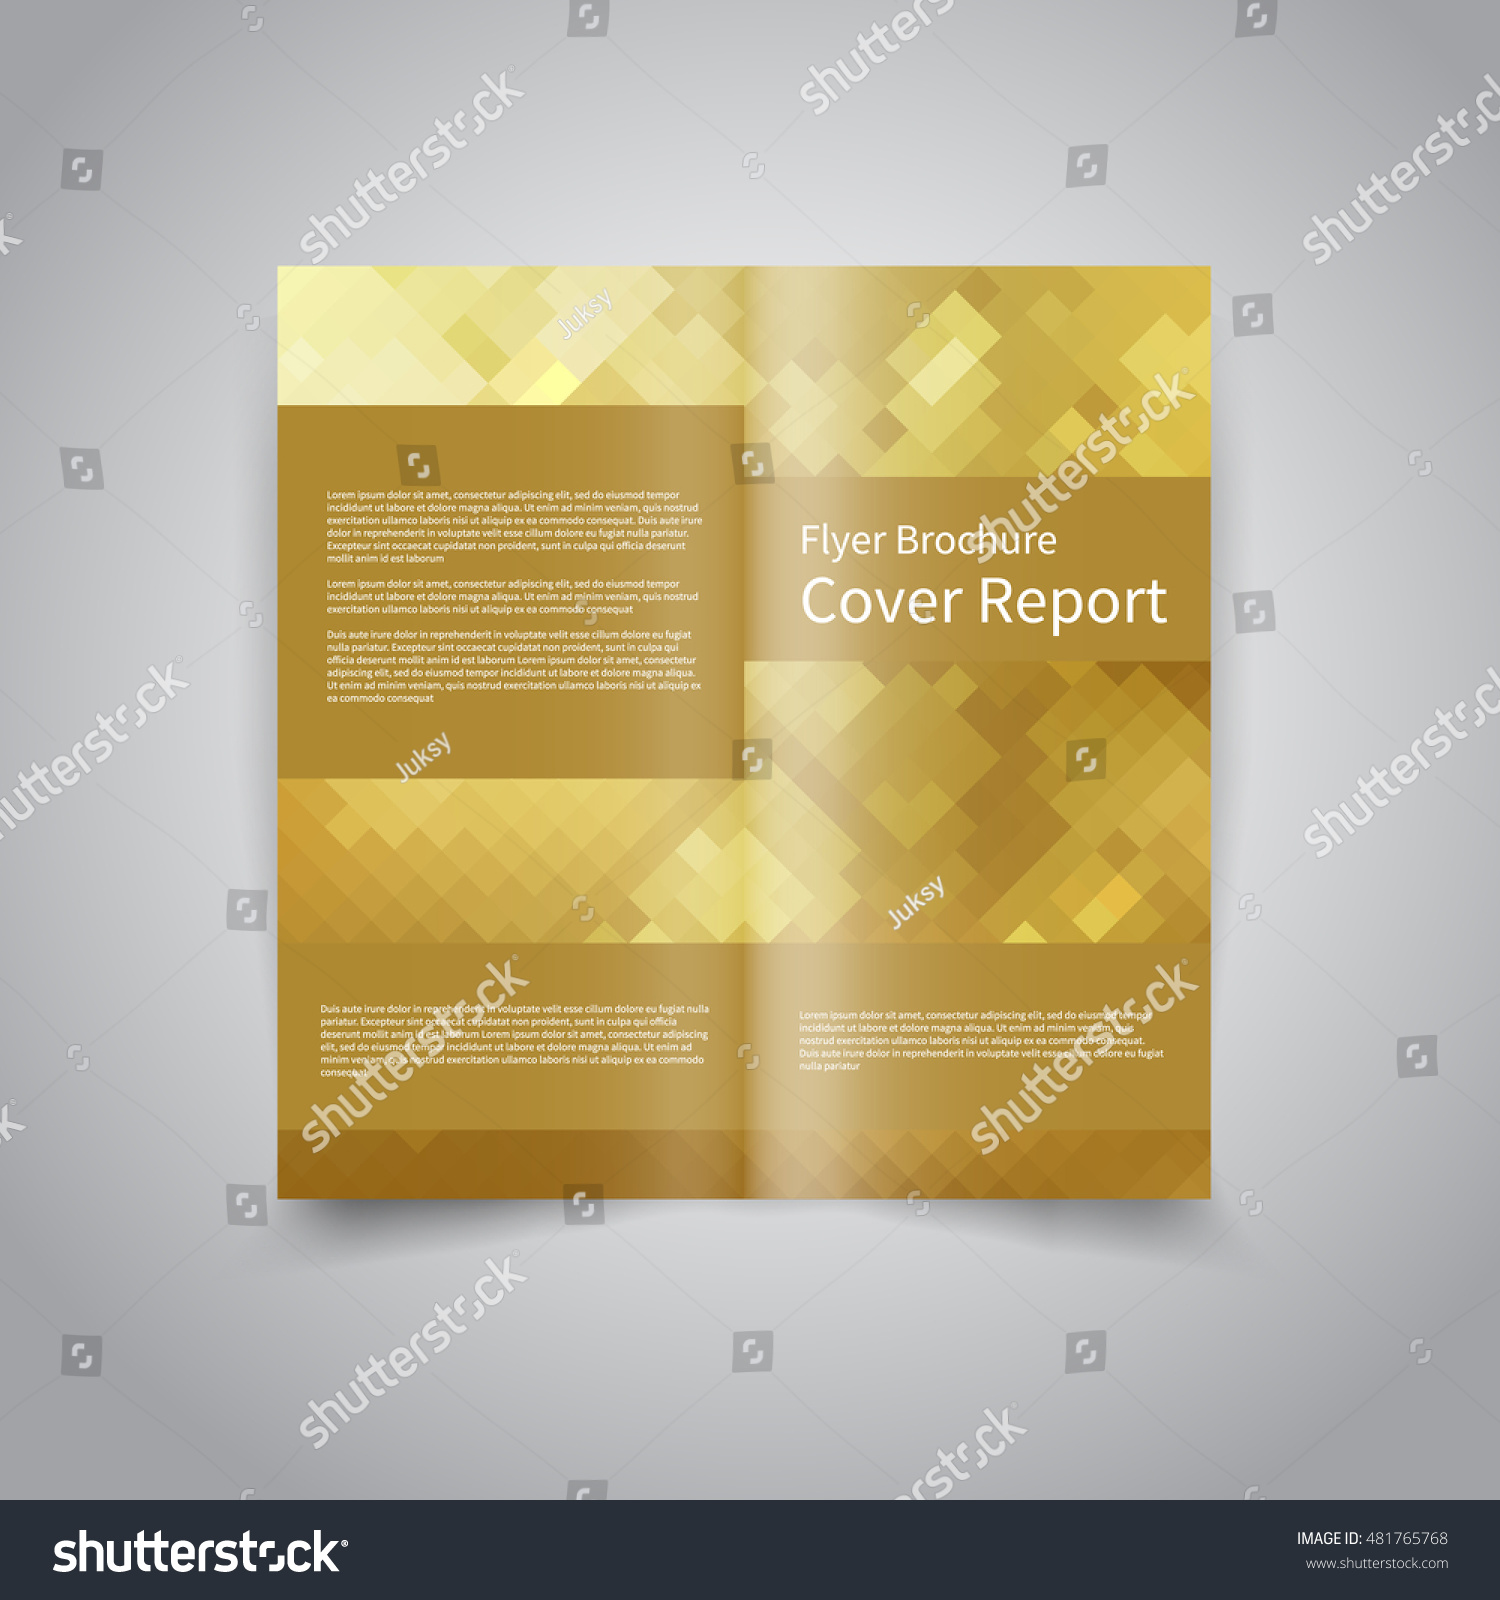 Vector Twofold Brochure Design Template Abstract Stock Photo (Photo ...